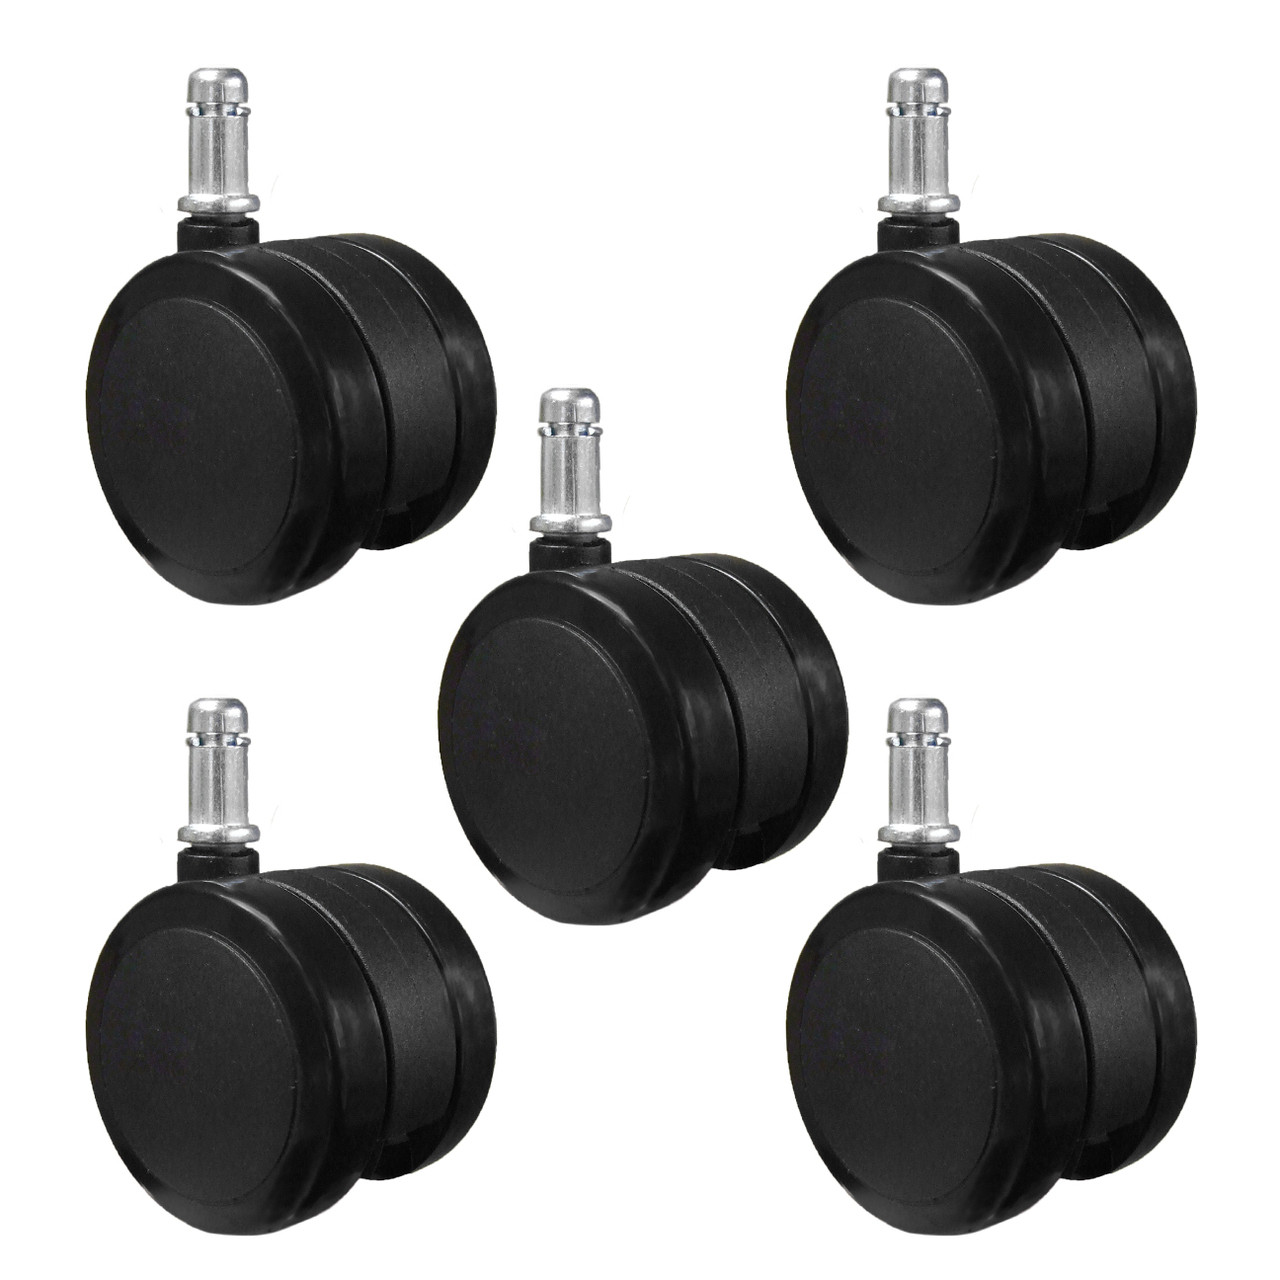 Replacement Hard Floor Casters Fit Herman Miller Aeron Chair